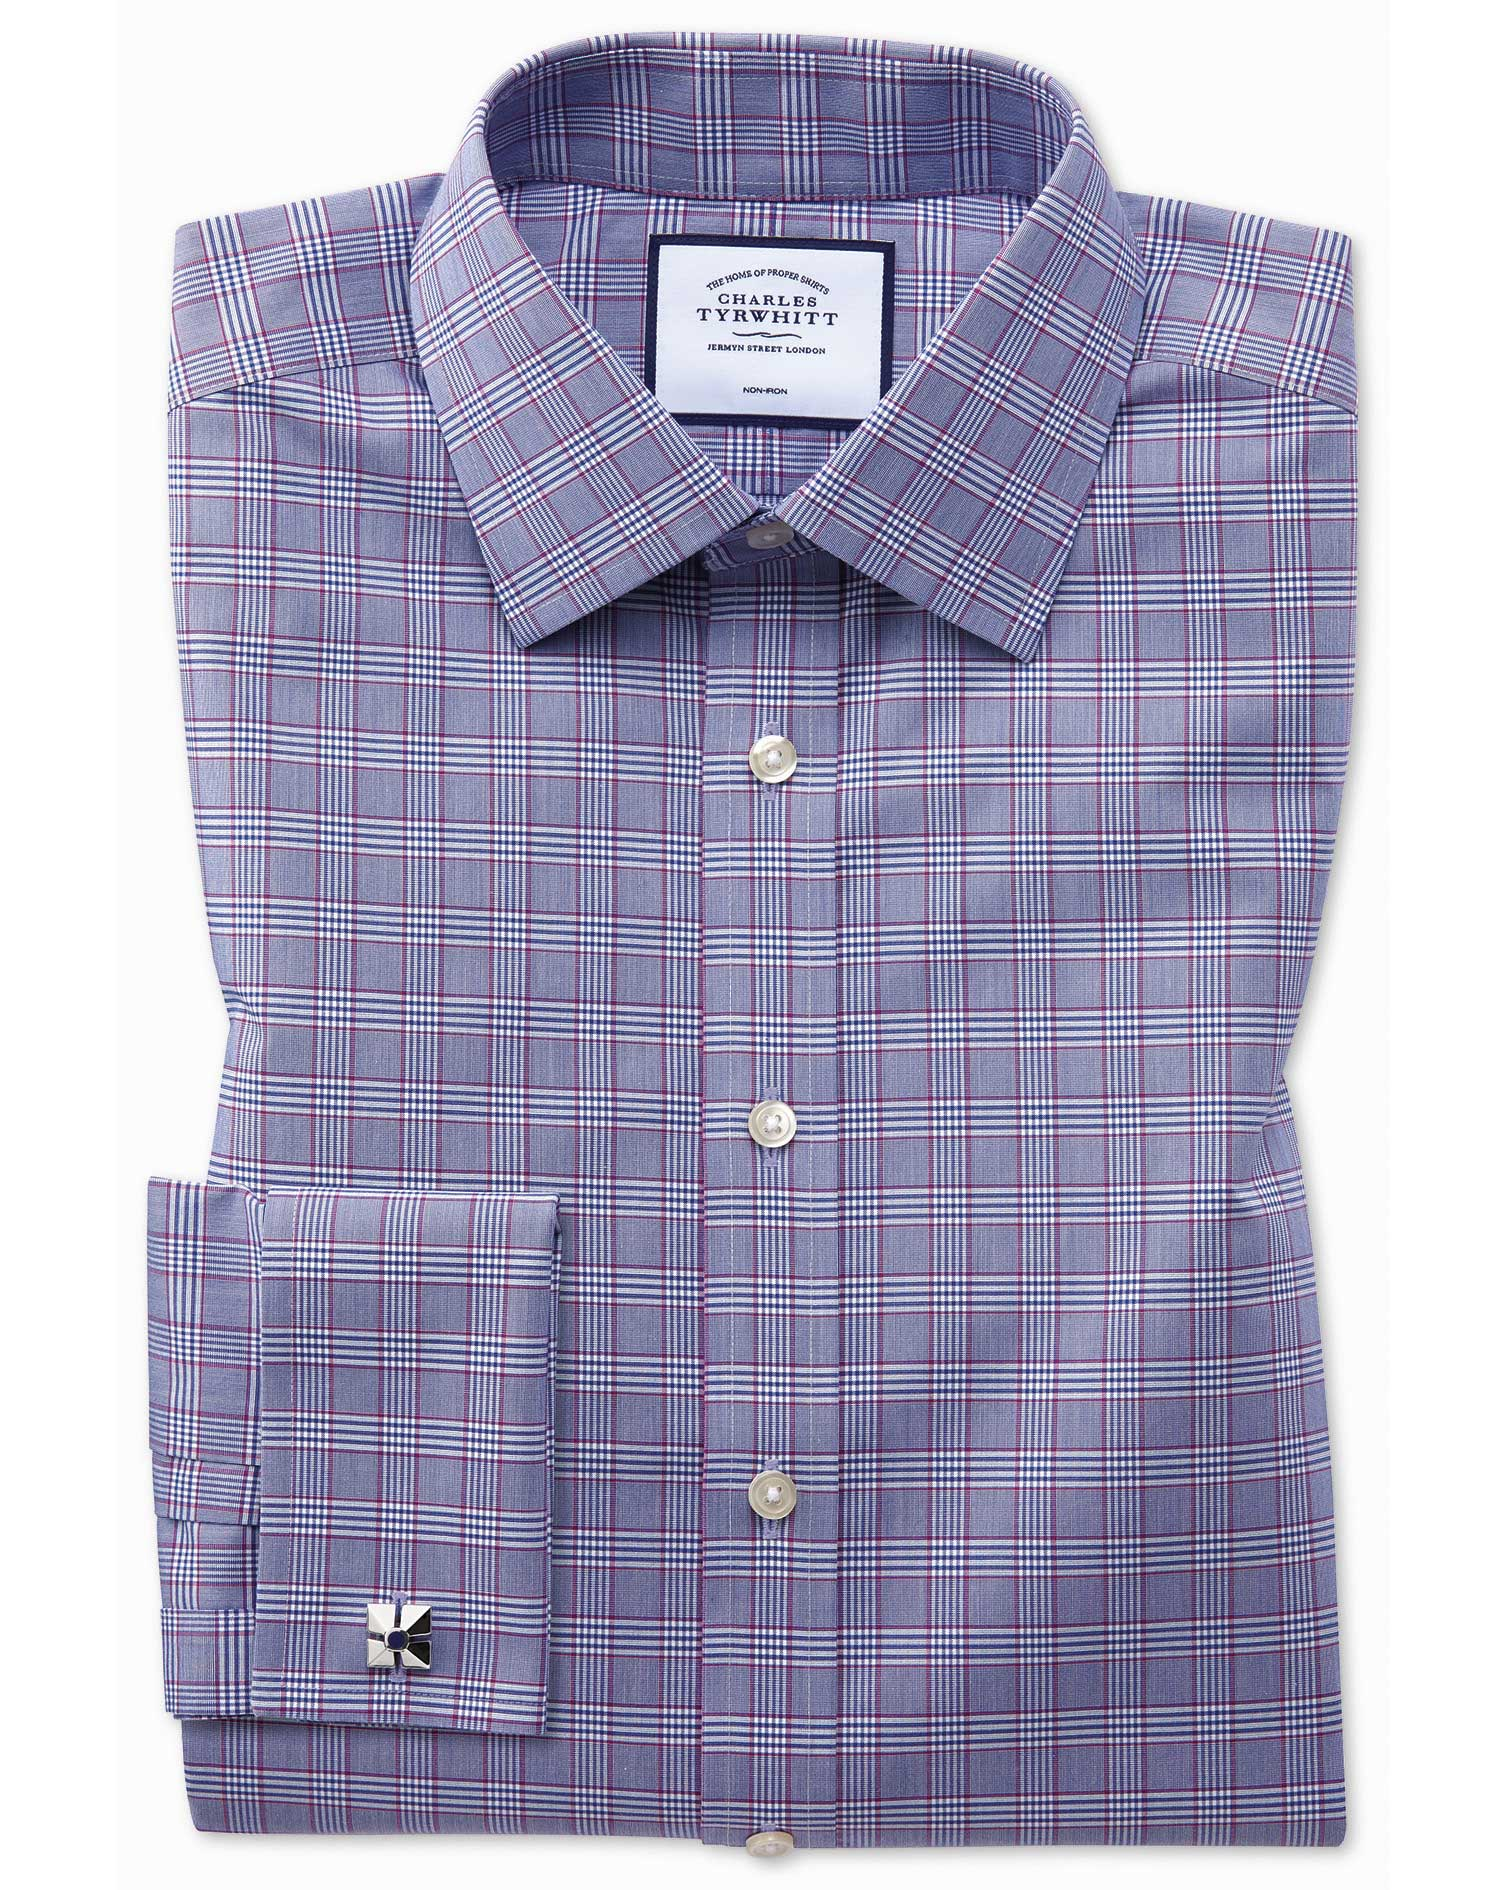 Classic Fit Non-Iron Berry and Navy Prince Of Wales Check Cotton Formal Shirt Double Cuff Size 16.5/